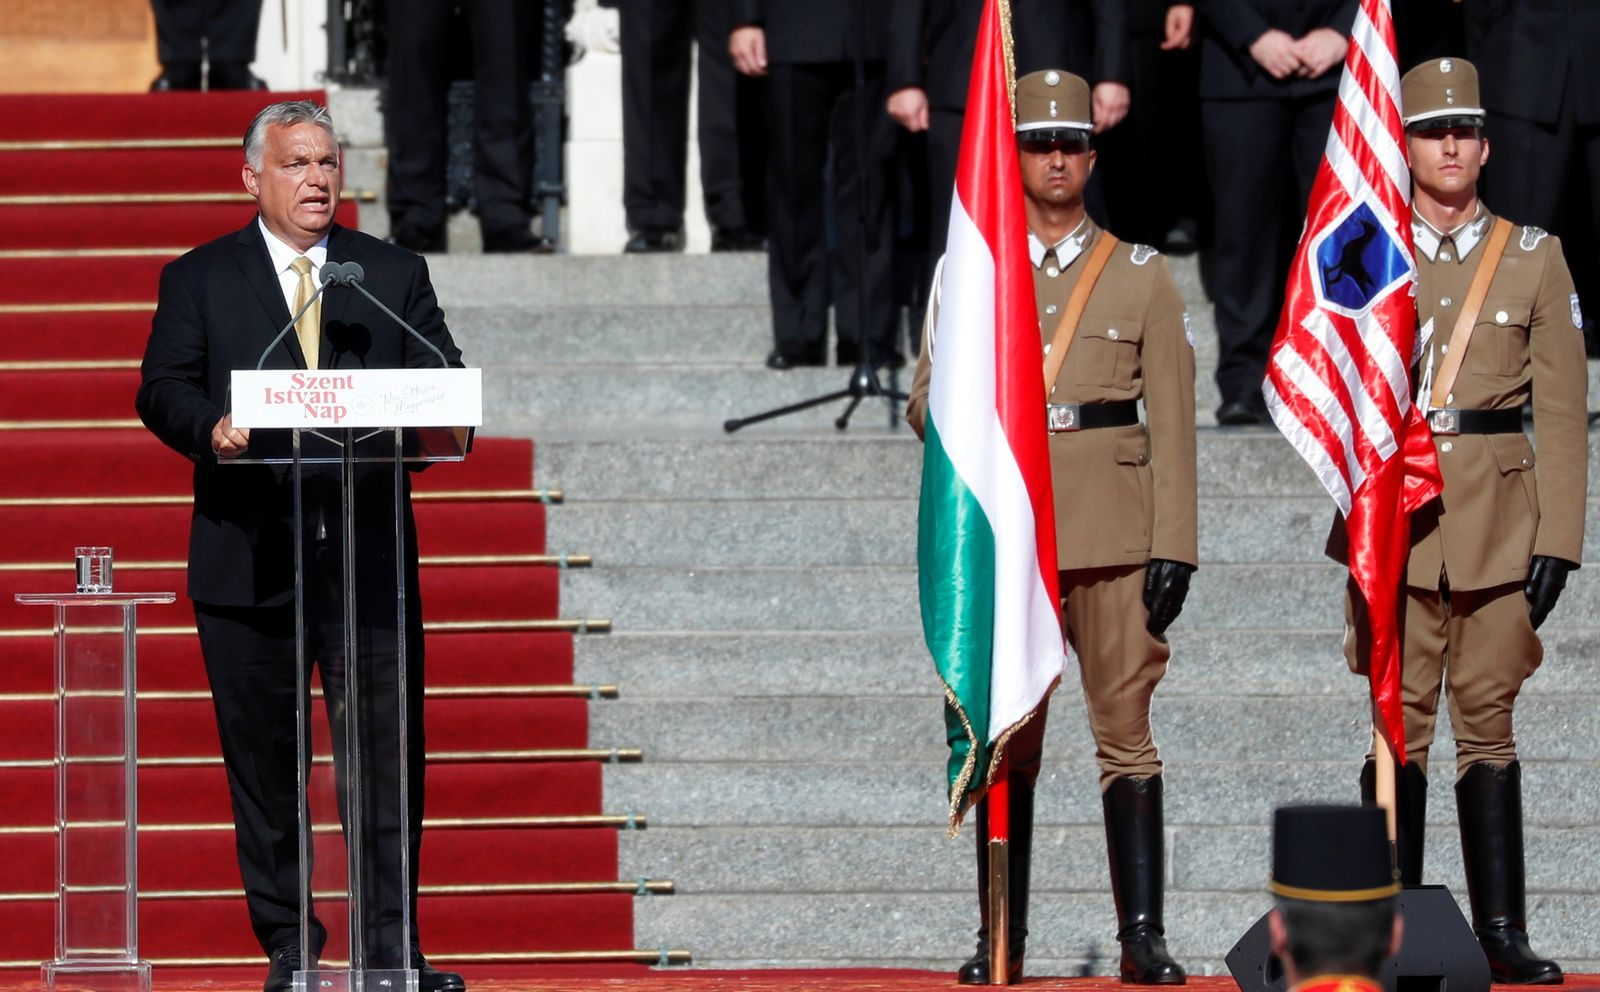 Unveiling ceremony of the 'Memorial of National Unity' in Budapest